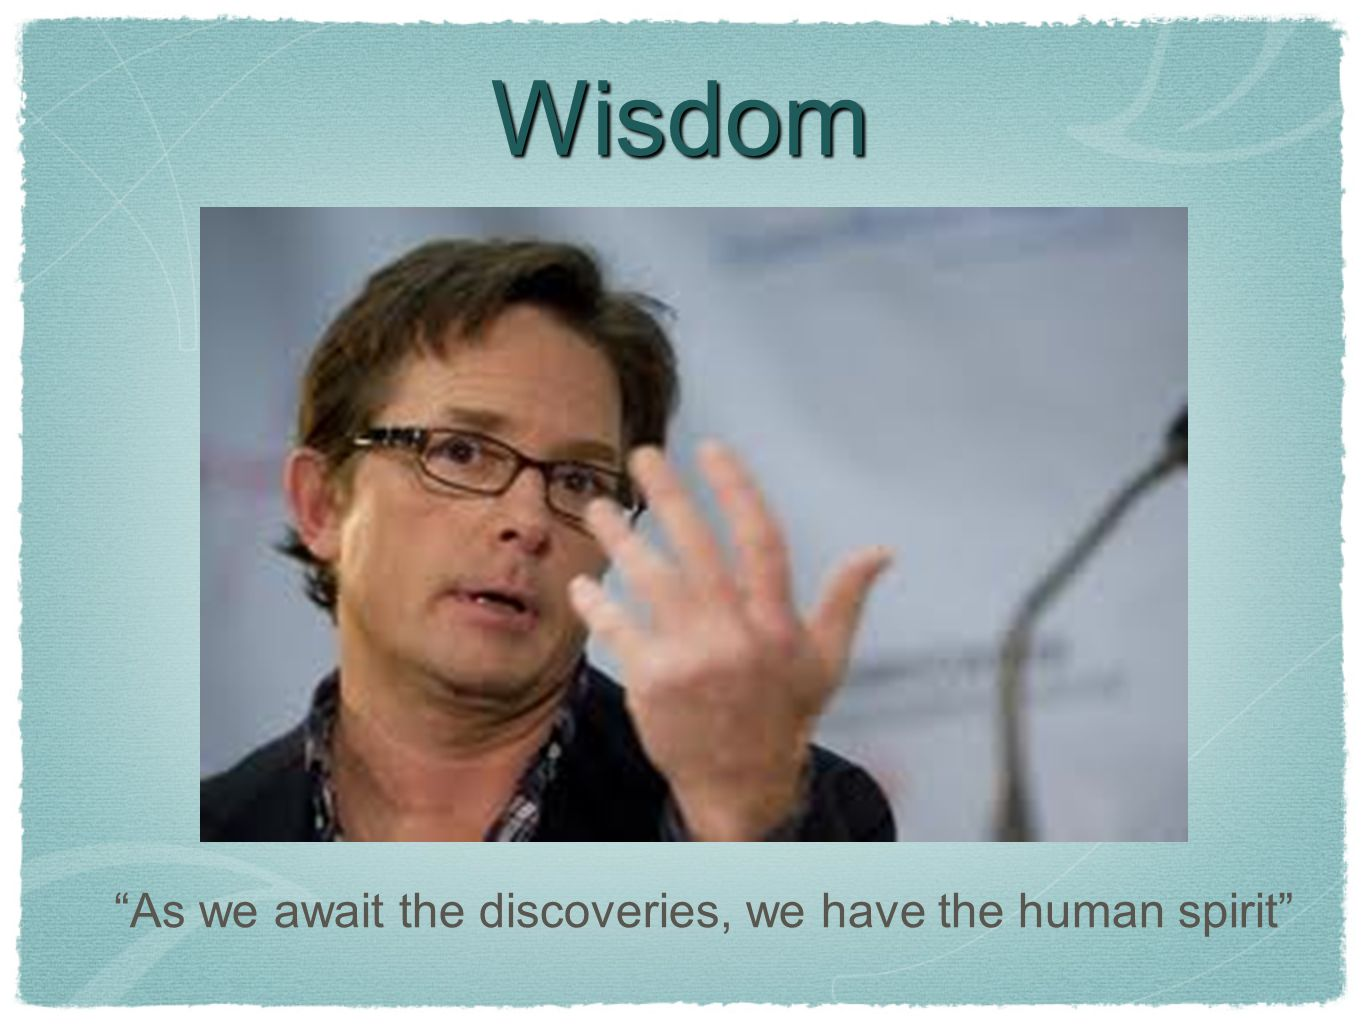 As we await the discoveries, we have the human spirit